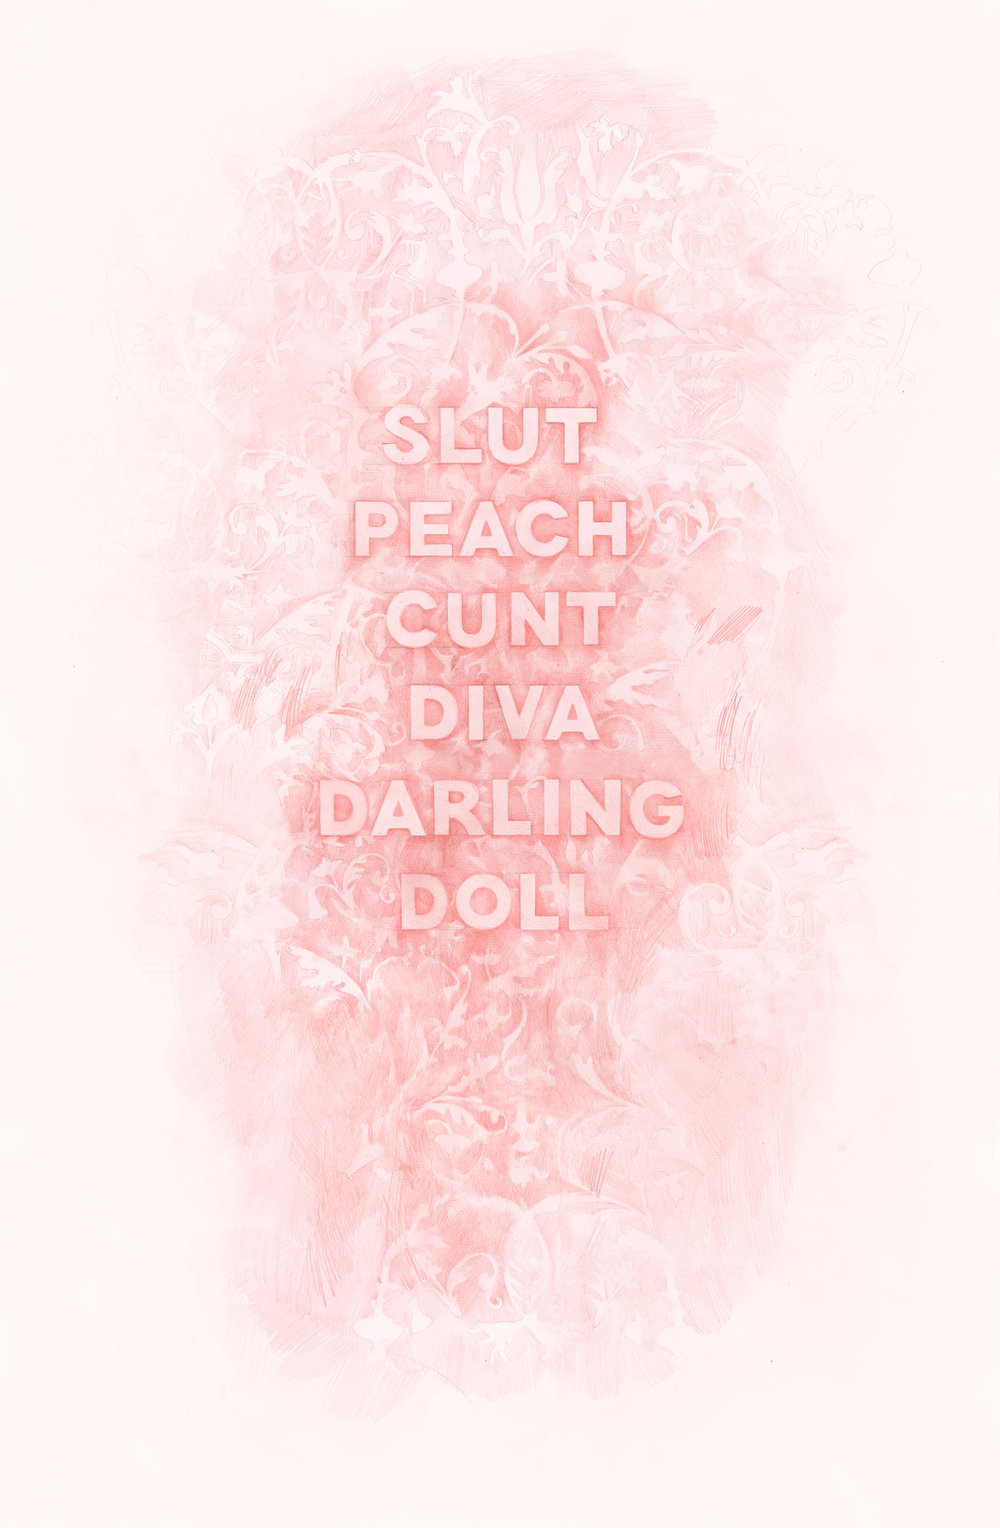 Slut Peach Cunt Diva Darling Doll,  colored pencil on paper, 25 x 40 inches, 2017